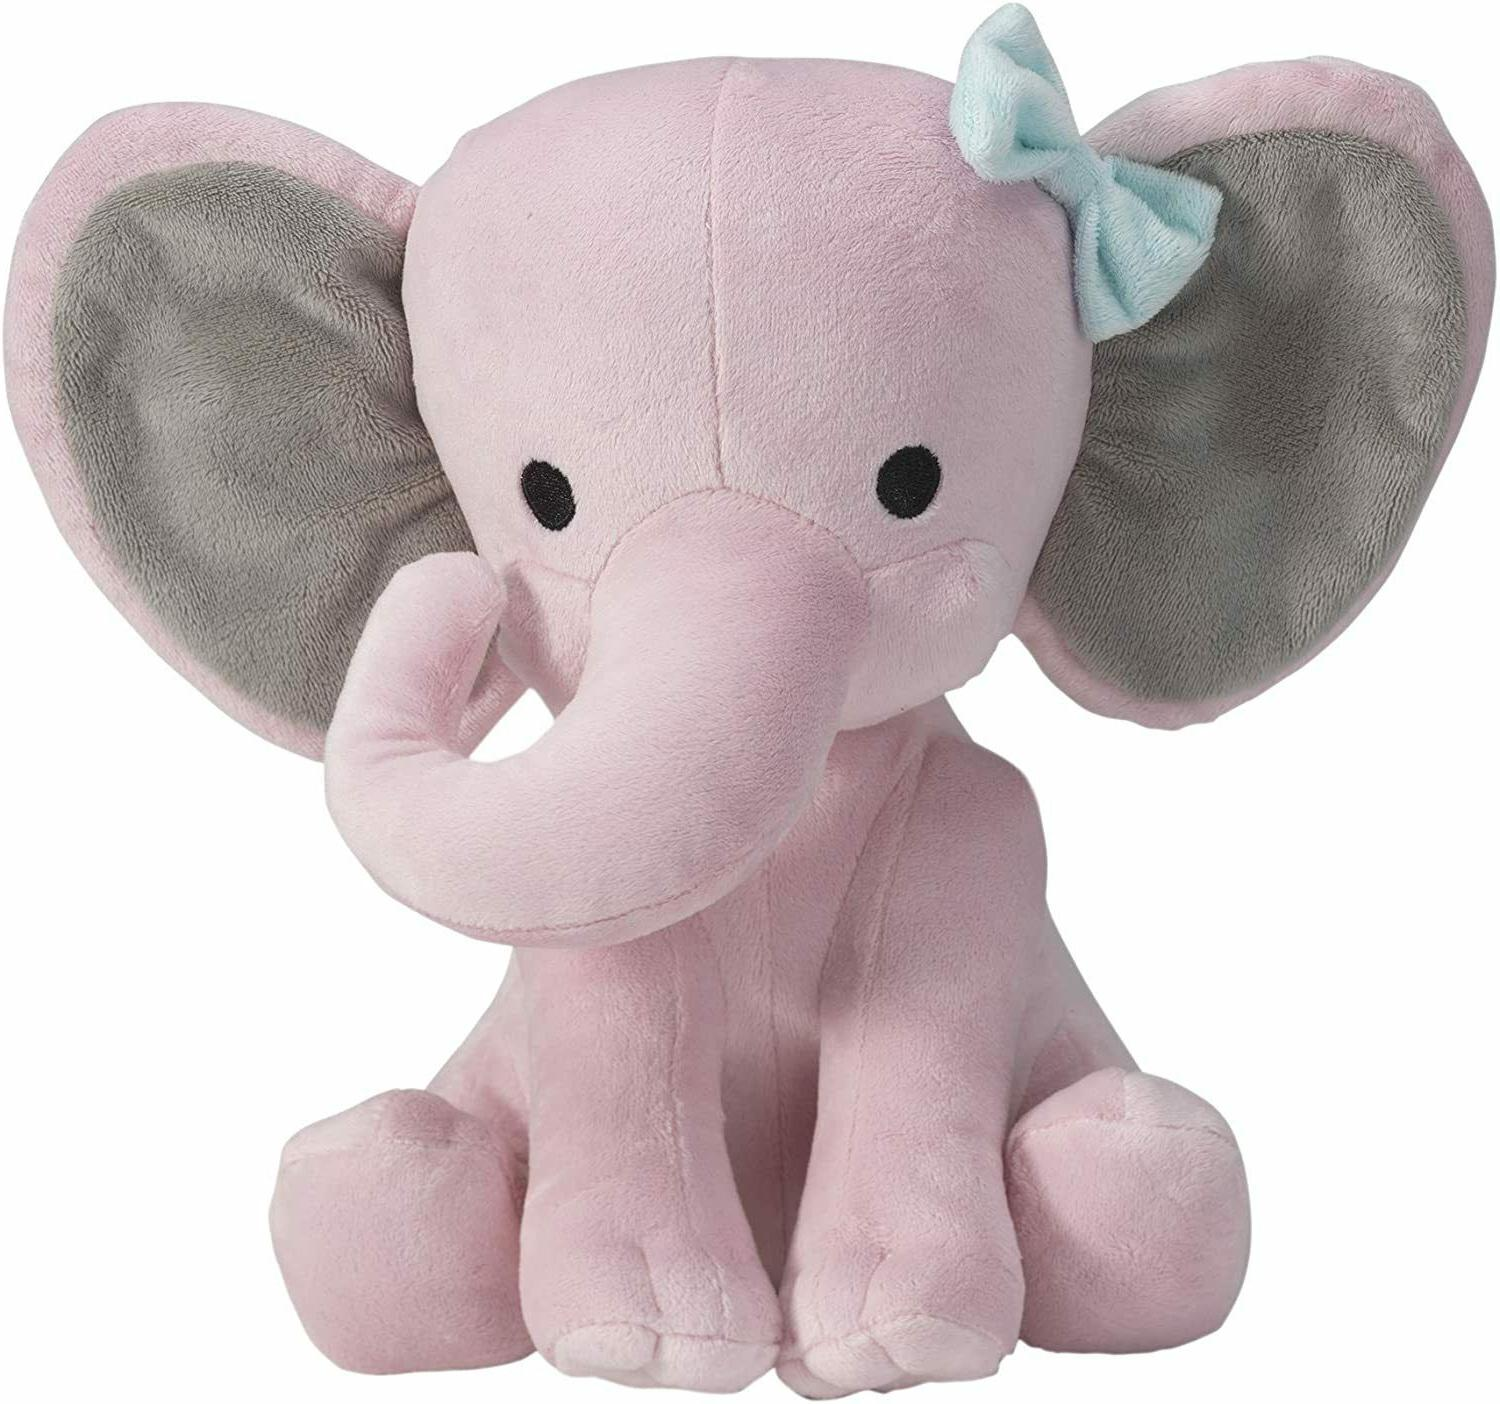 pink stuffed animal plush toy for baby